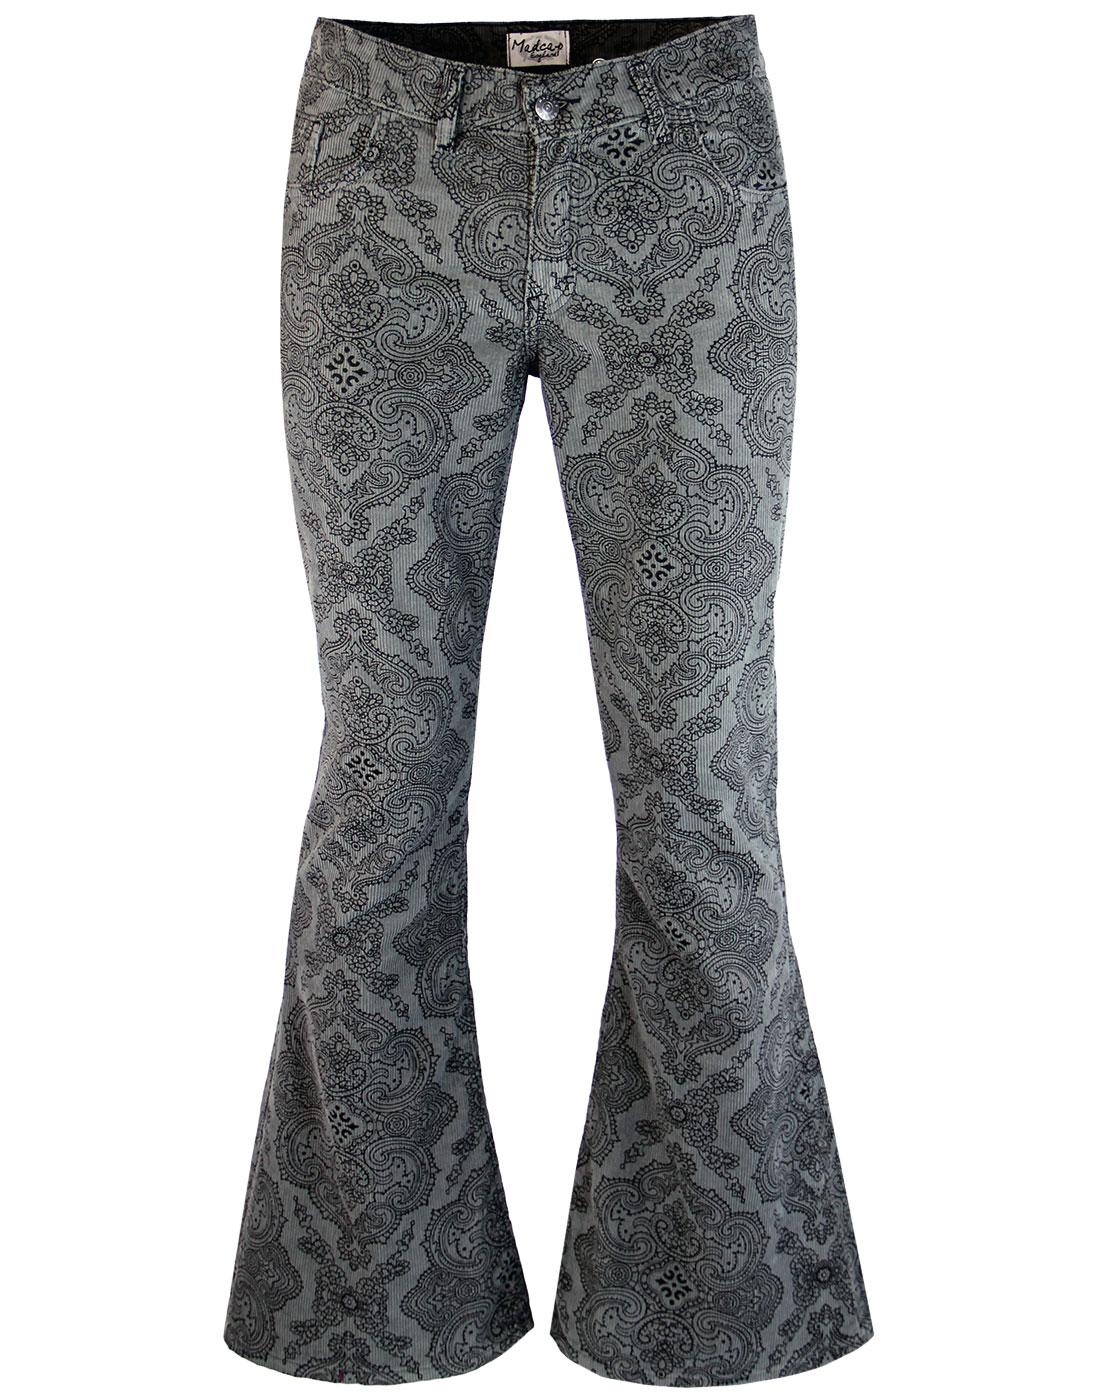 Greatest Mens Flares, Bell-bottoms, Flared Jeans, Madcap England Flares ZV84